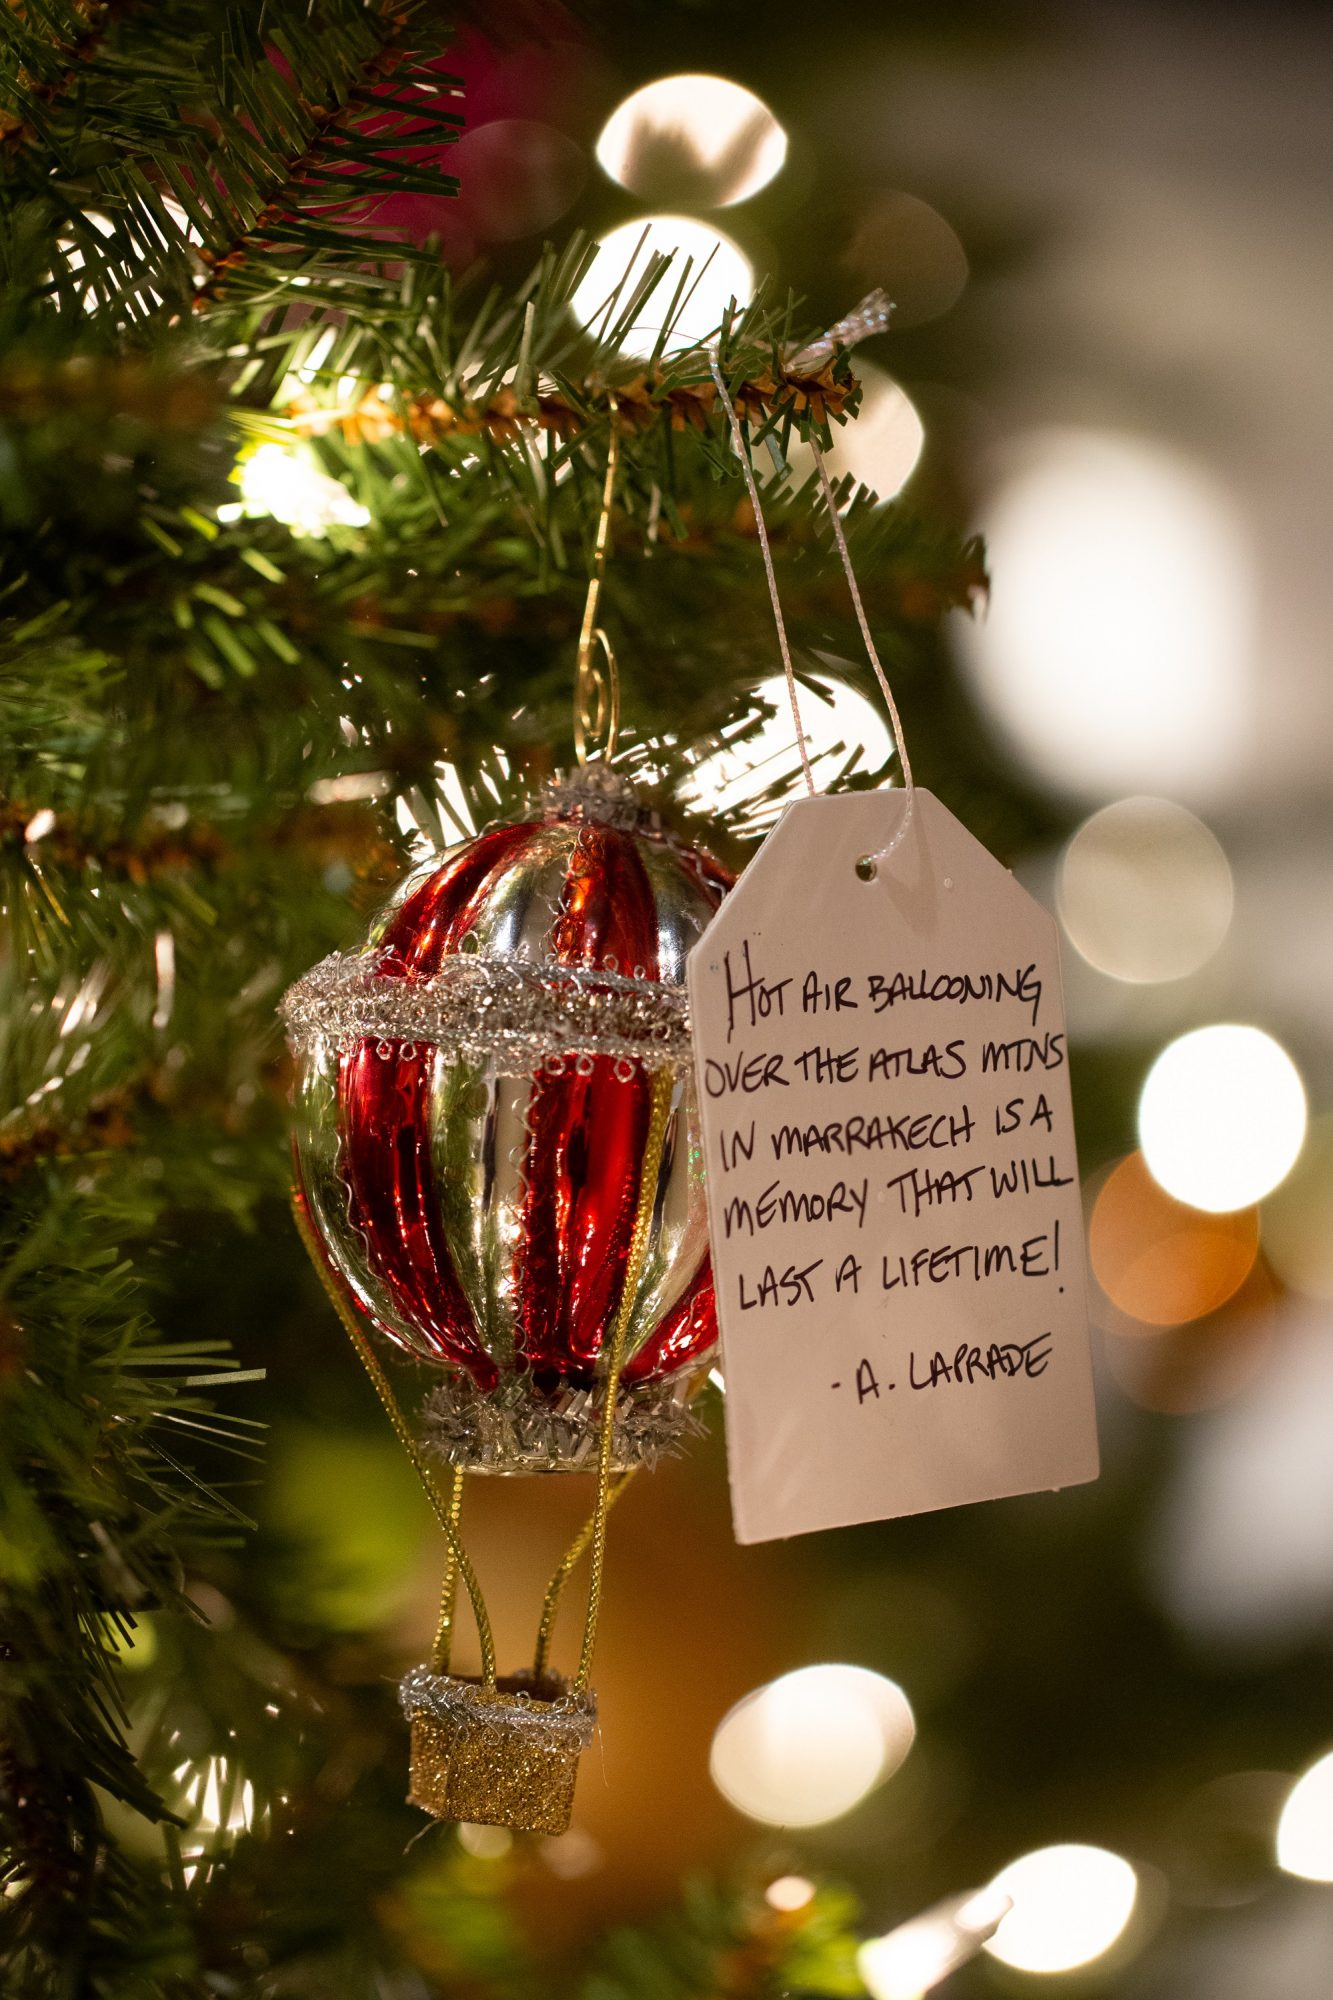 christmas ornament next to memory written on tree